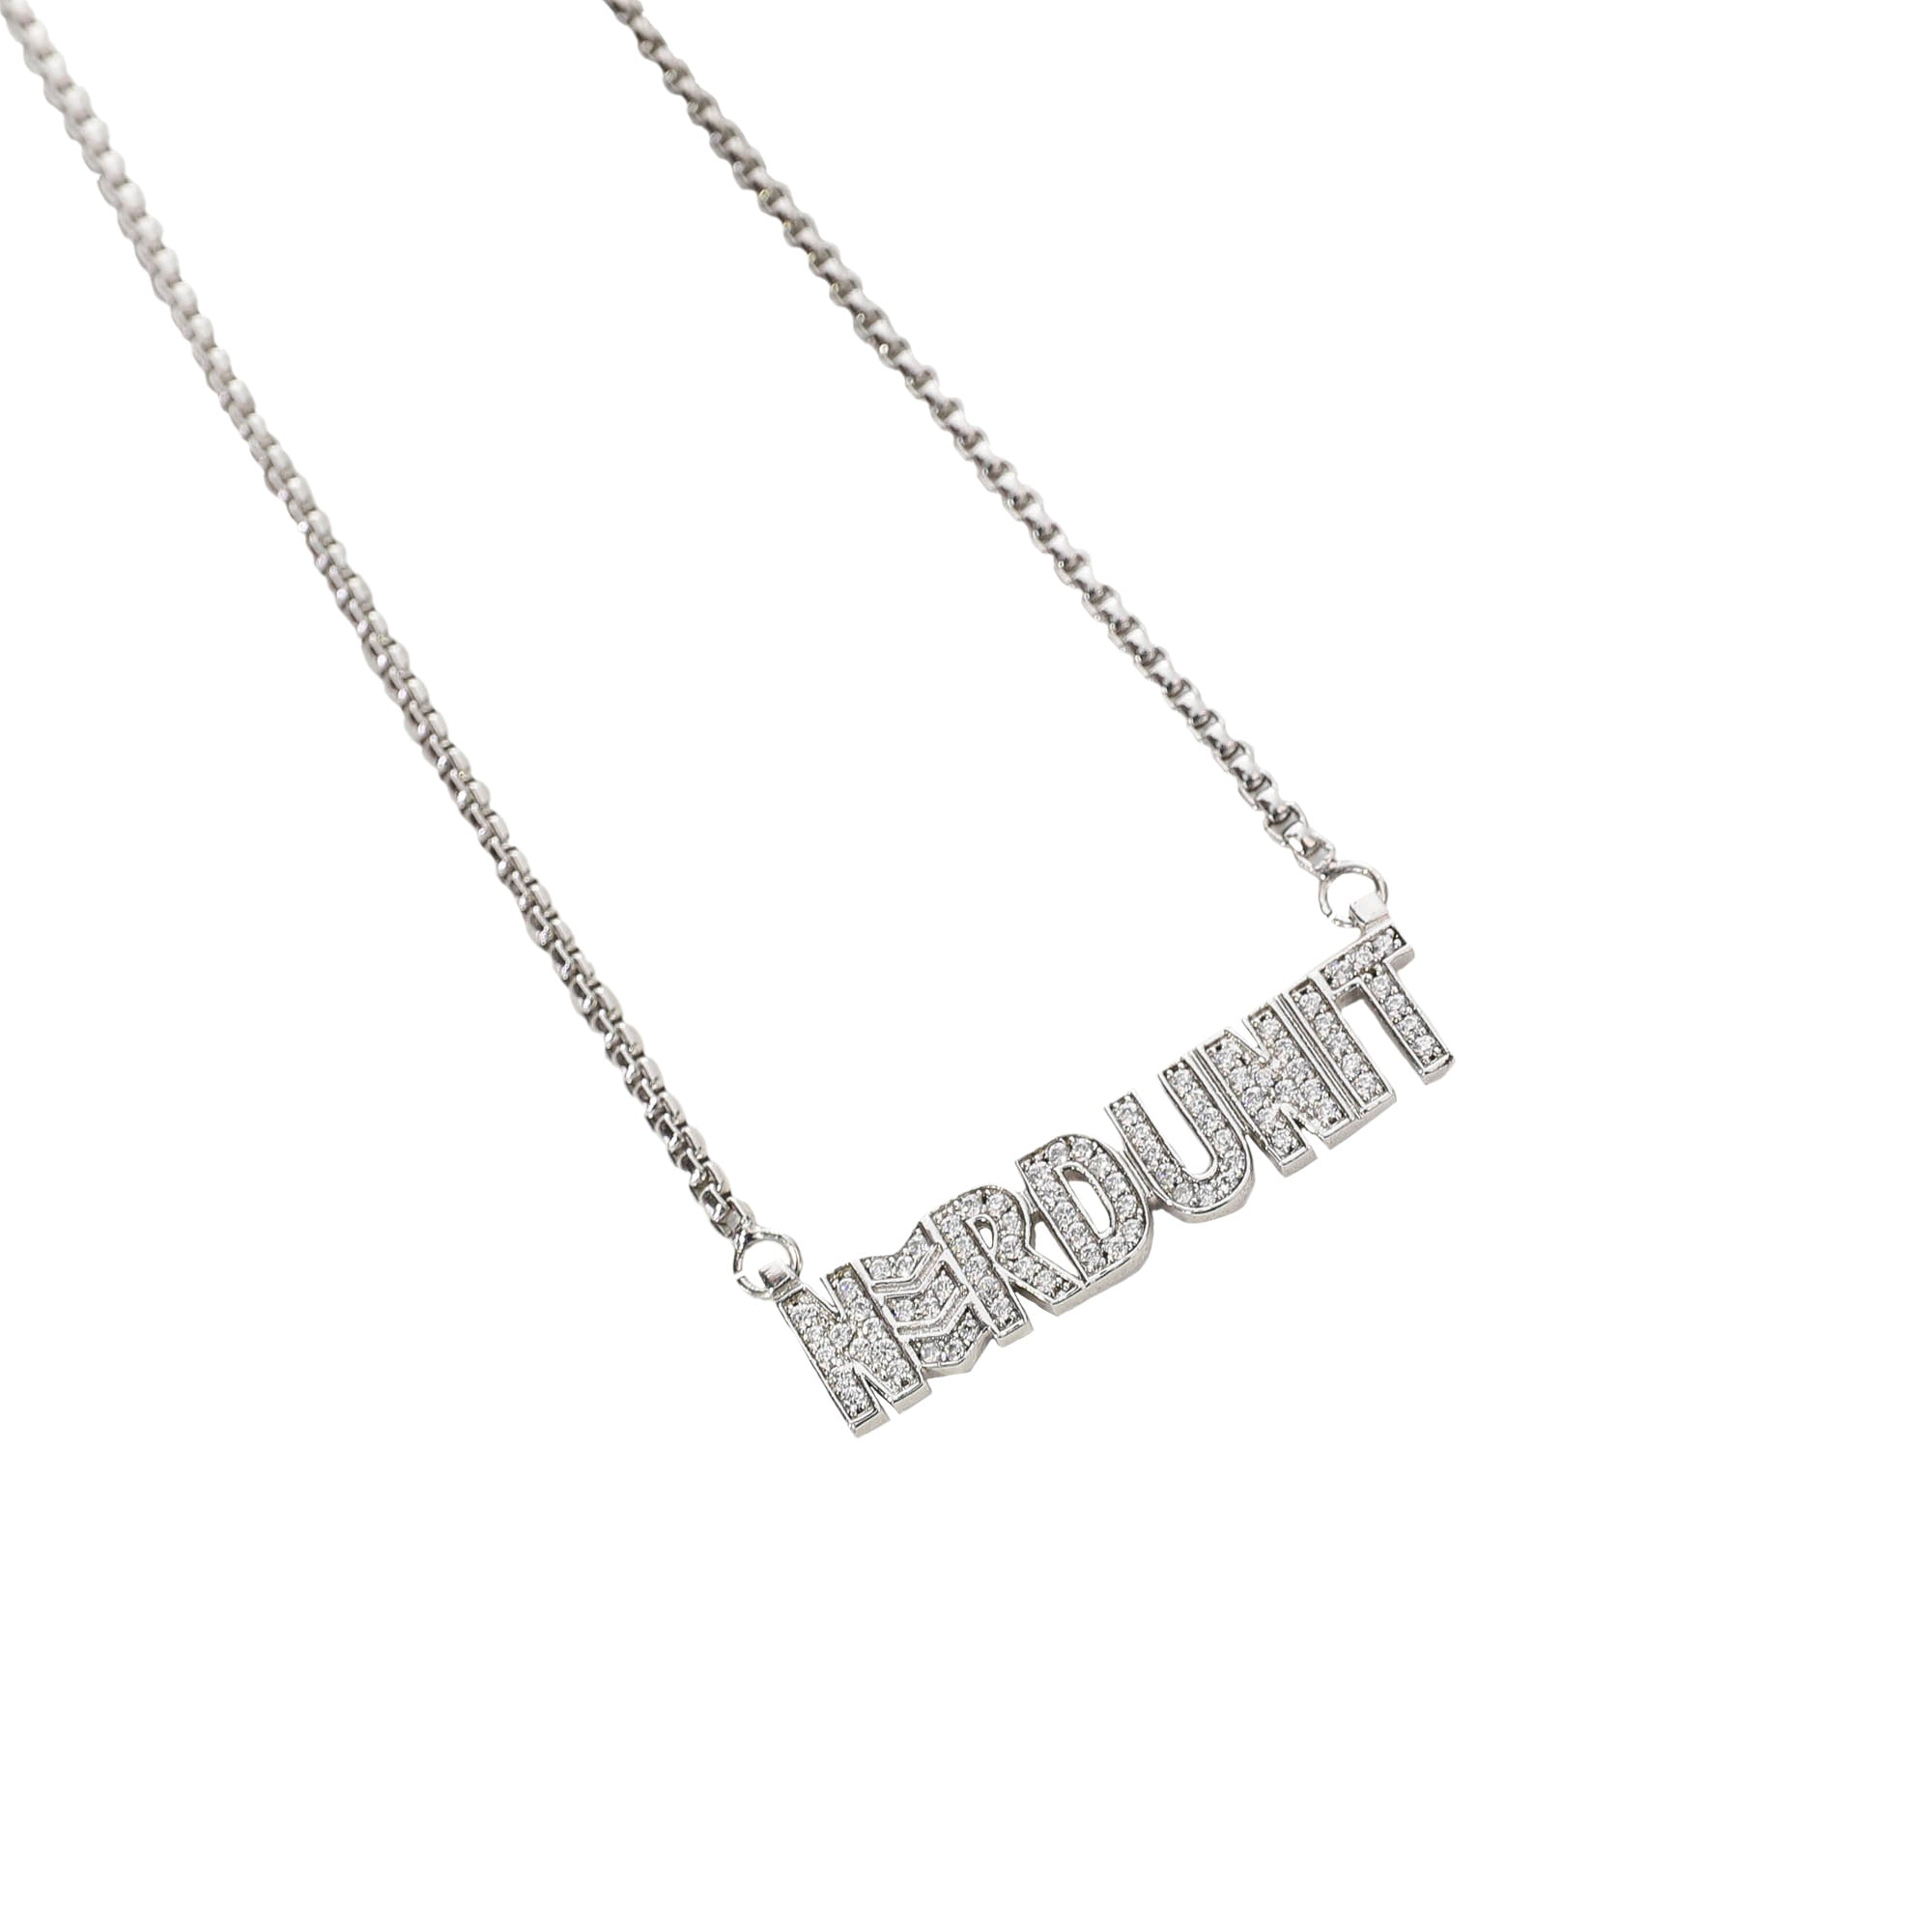 NAMEPLATE RHINESTONES NECKLACE (ネームプレートラインストーンネックレス)